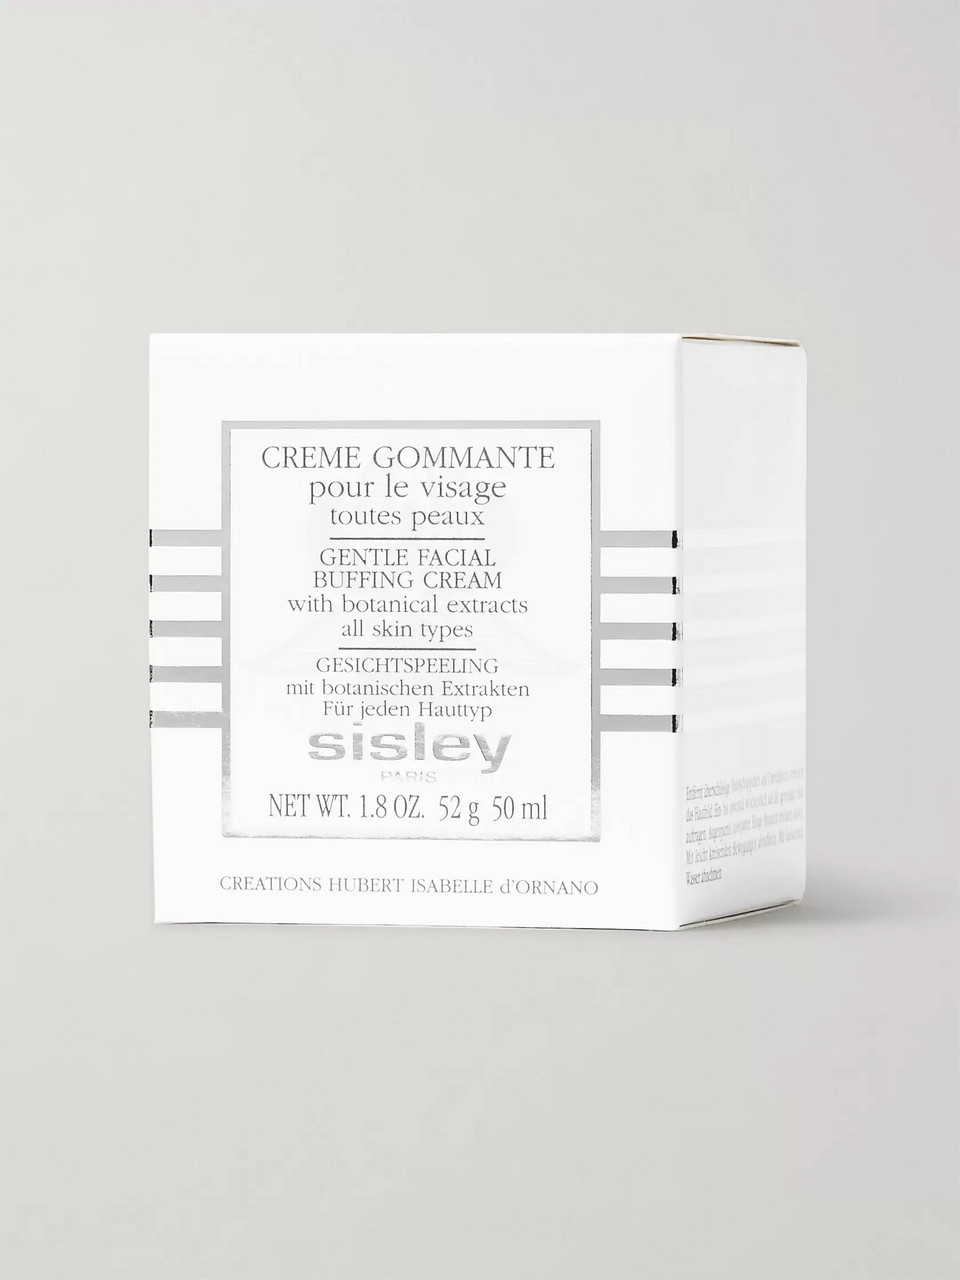 Sisley - Paris Gentle Facial Buffing Cream, 50ml